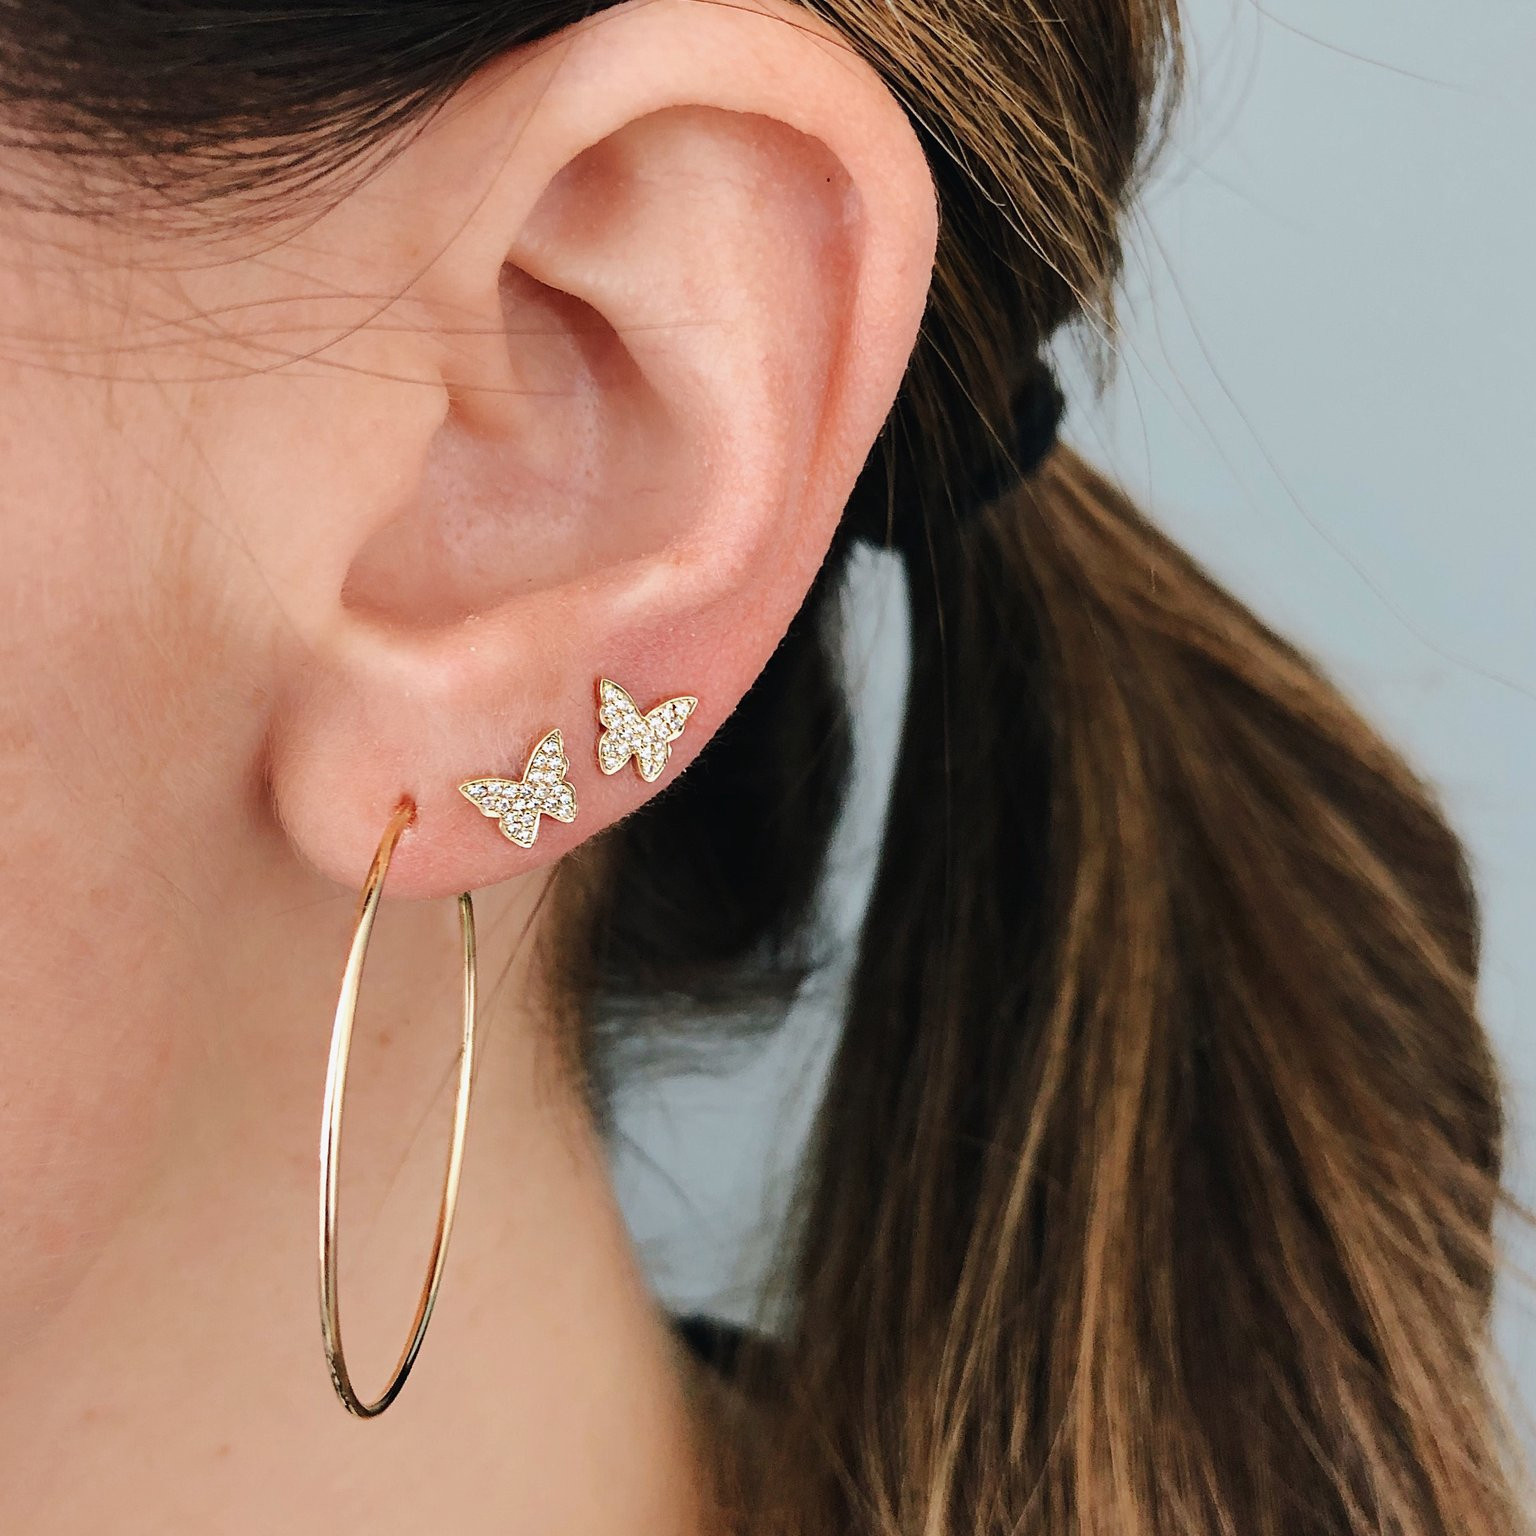 The Perfect Gold Hoop Earrings by EF Collection on Model